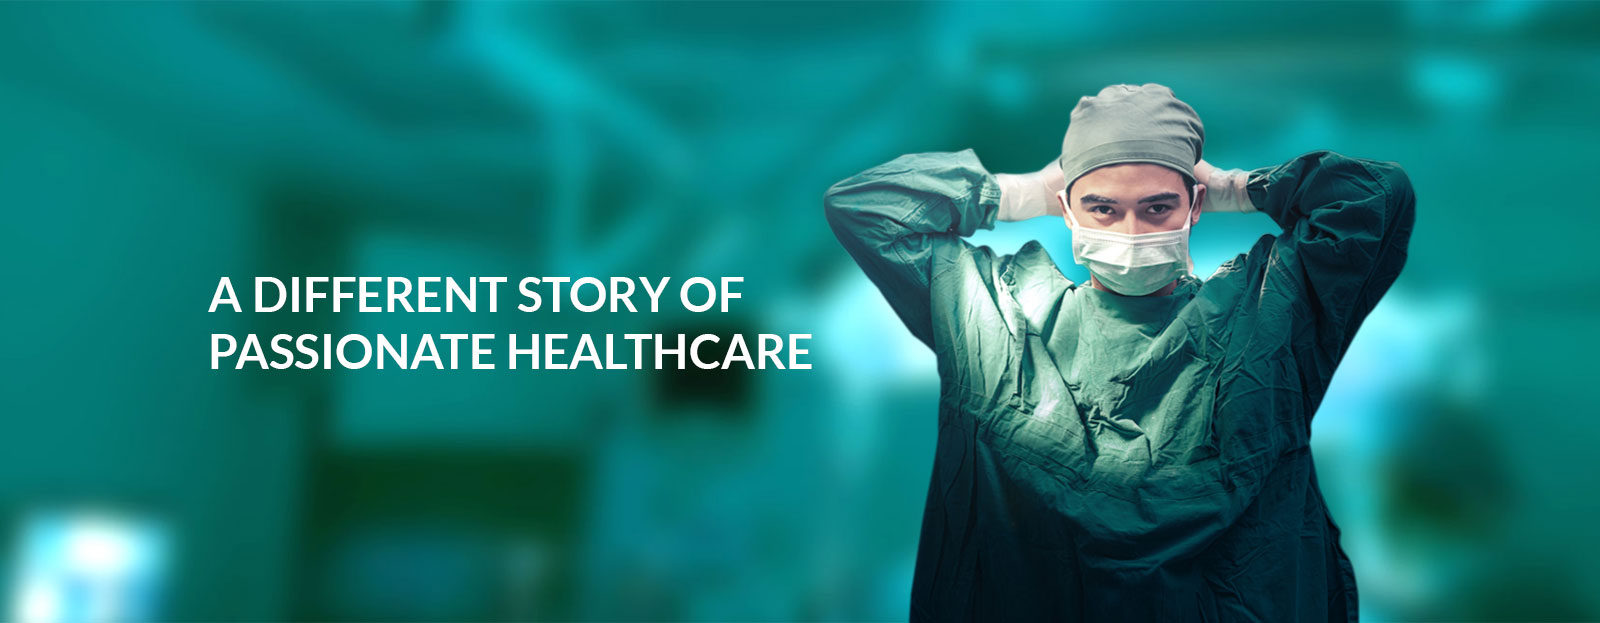 A DIFFERENT STORY OF PASSIONATE HEALTHCARE